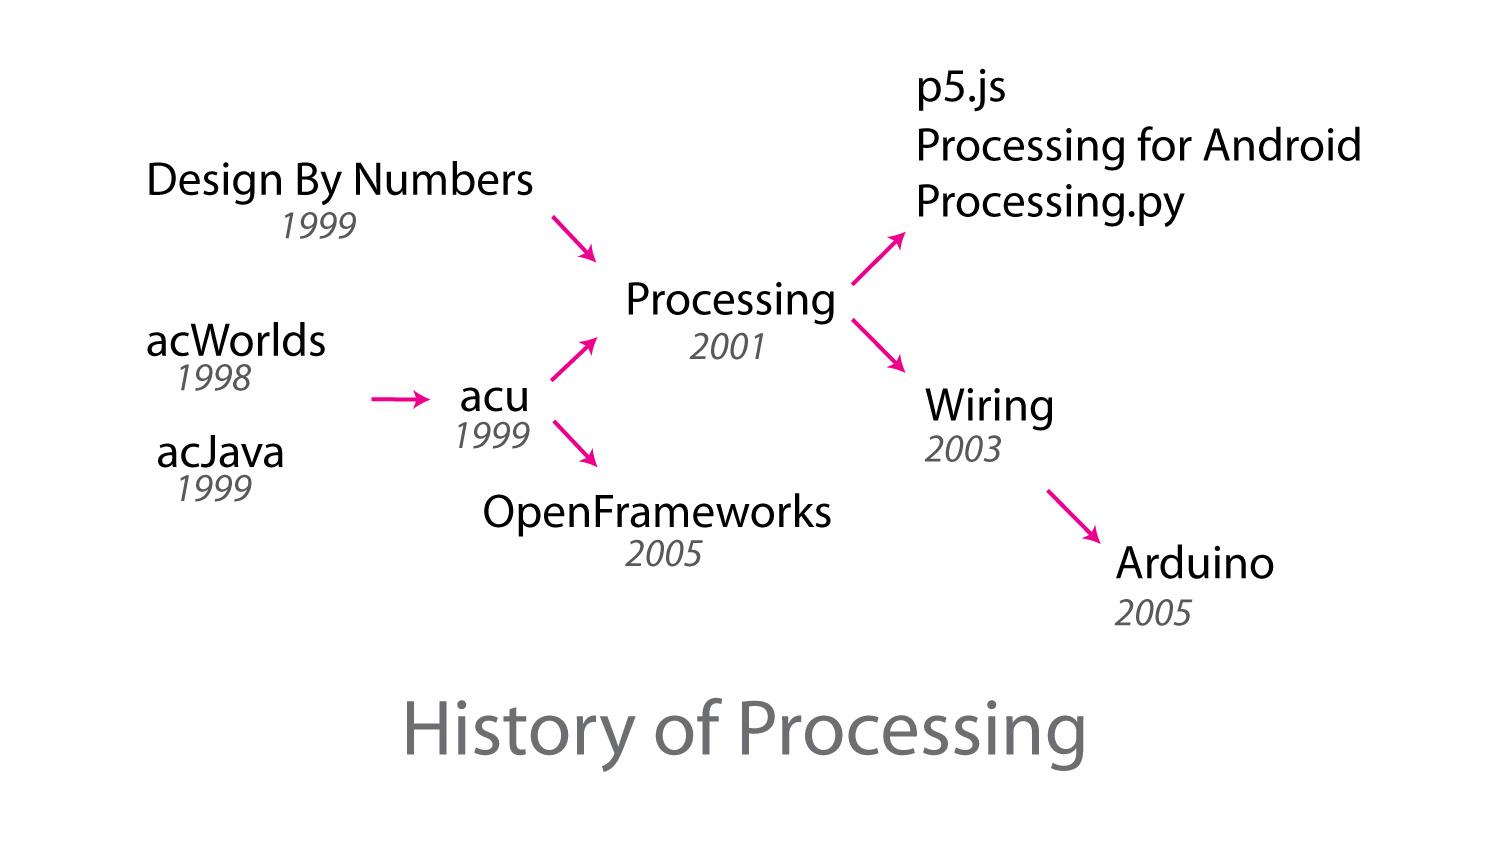 Research Essay The History Of Processing Maks Surguys Blog On Wiring Arduino In One Diagram Includes Corrections From Tom Whites Tweet Referenced Above